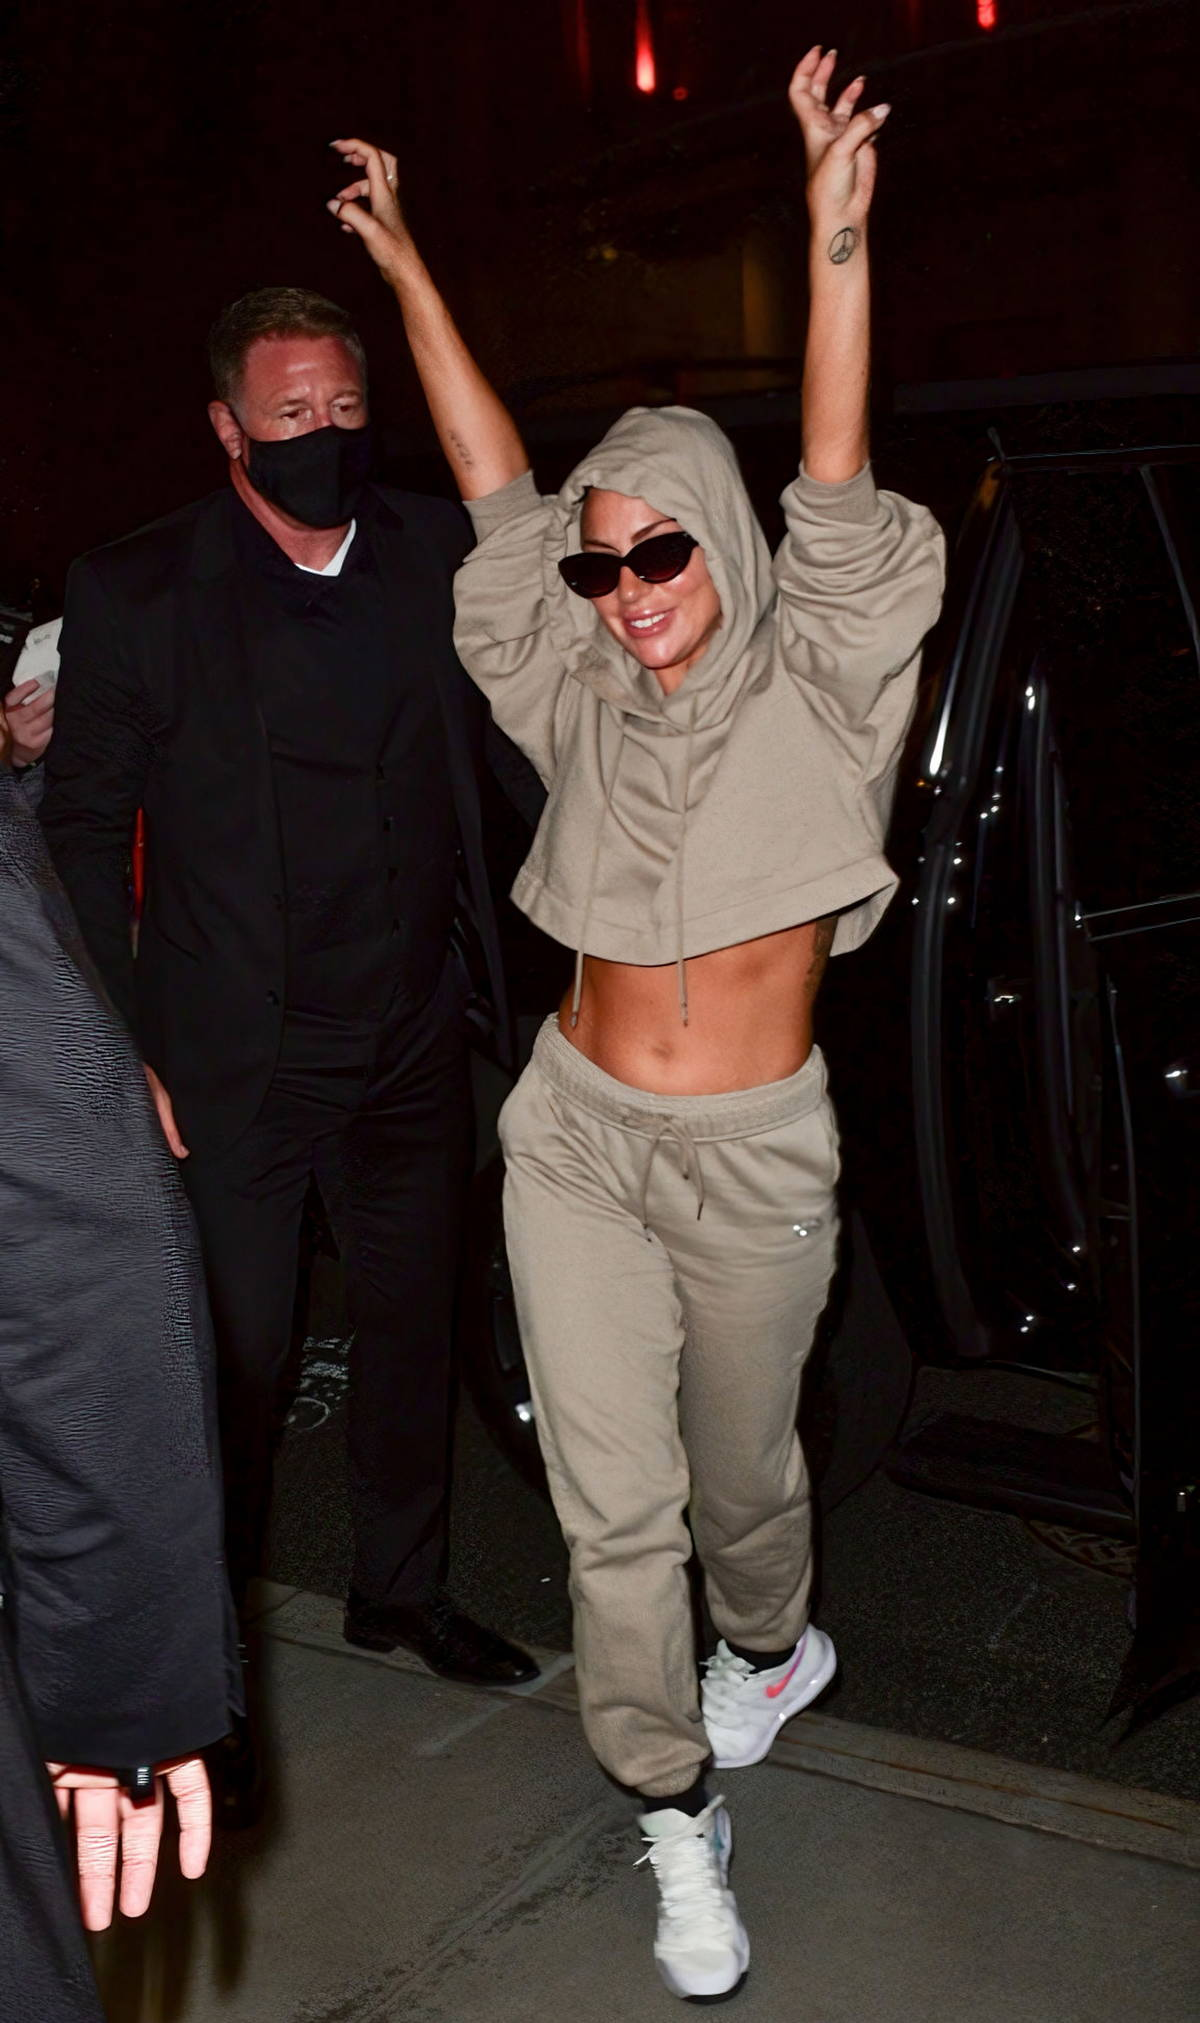 Lady Gaga flashes her taut tummy during a night out in Manhattan, New York City